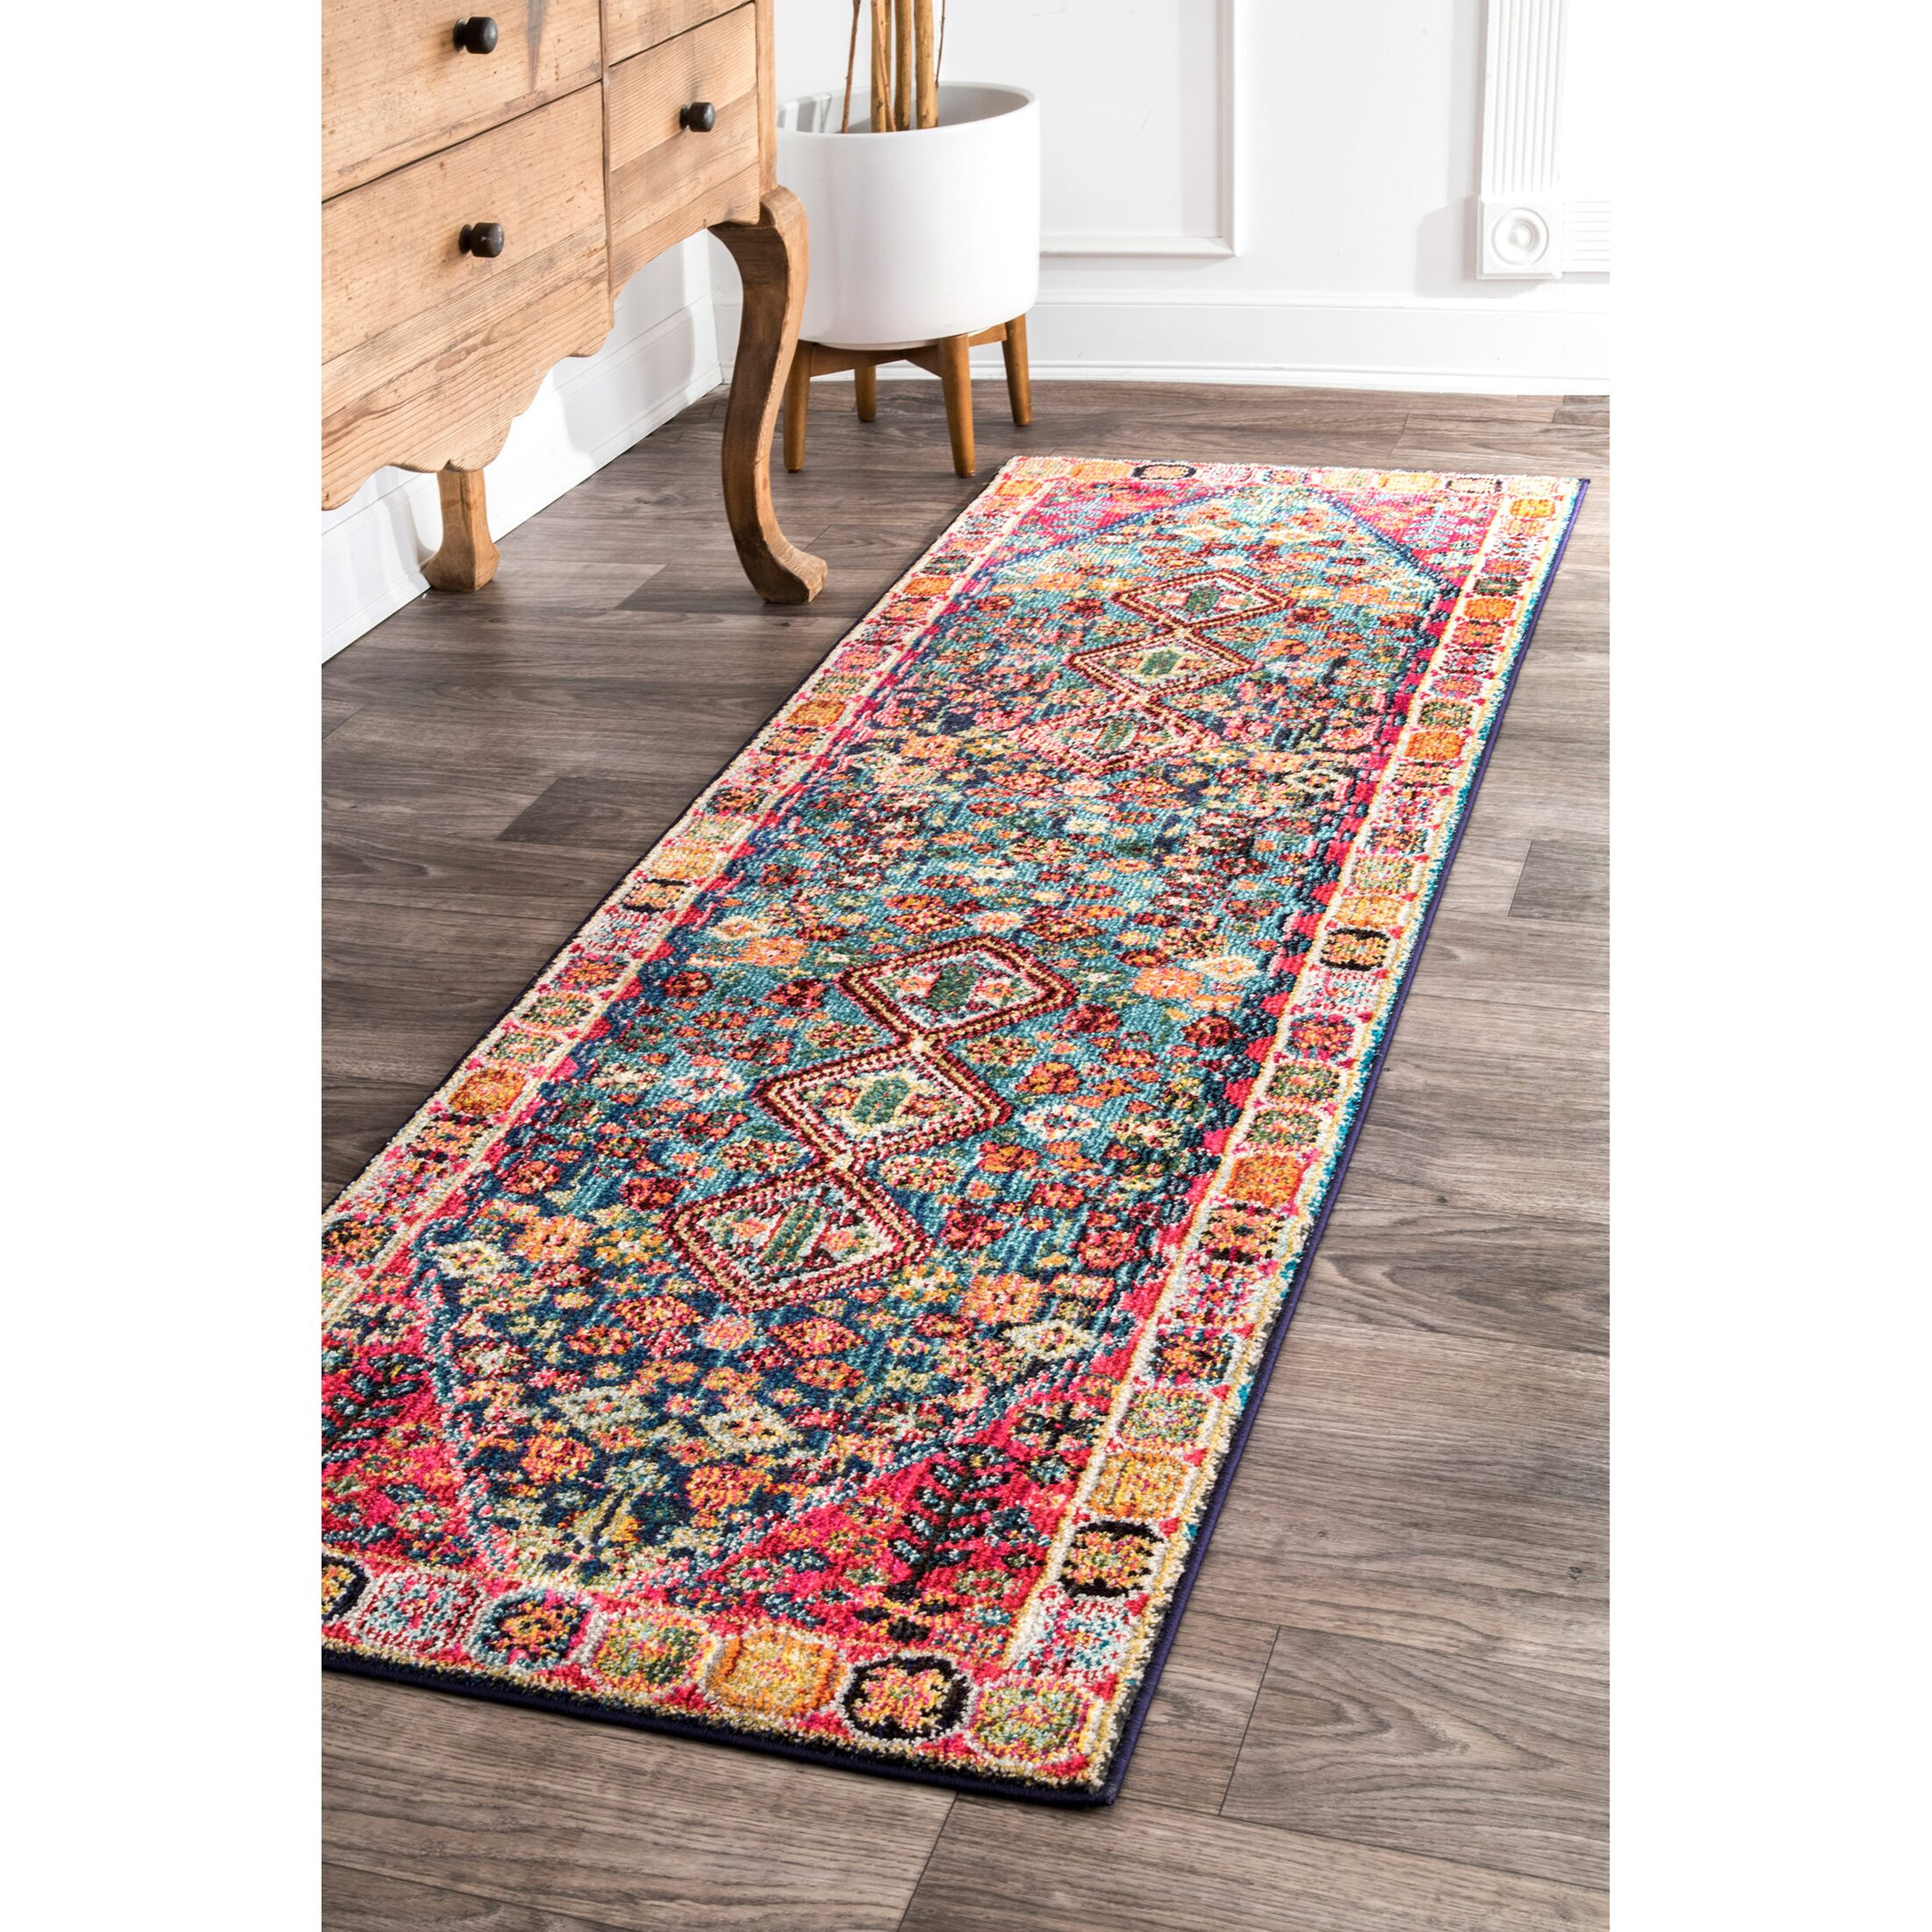 Azemmour Blue/Pink Area Rug Rug Size: Runner 2'6